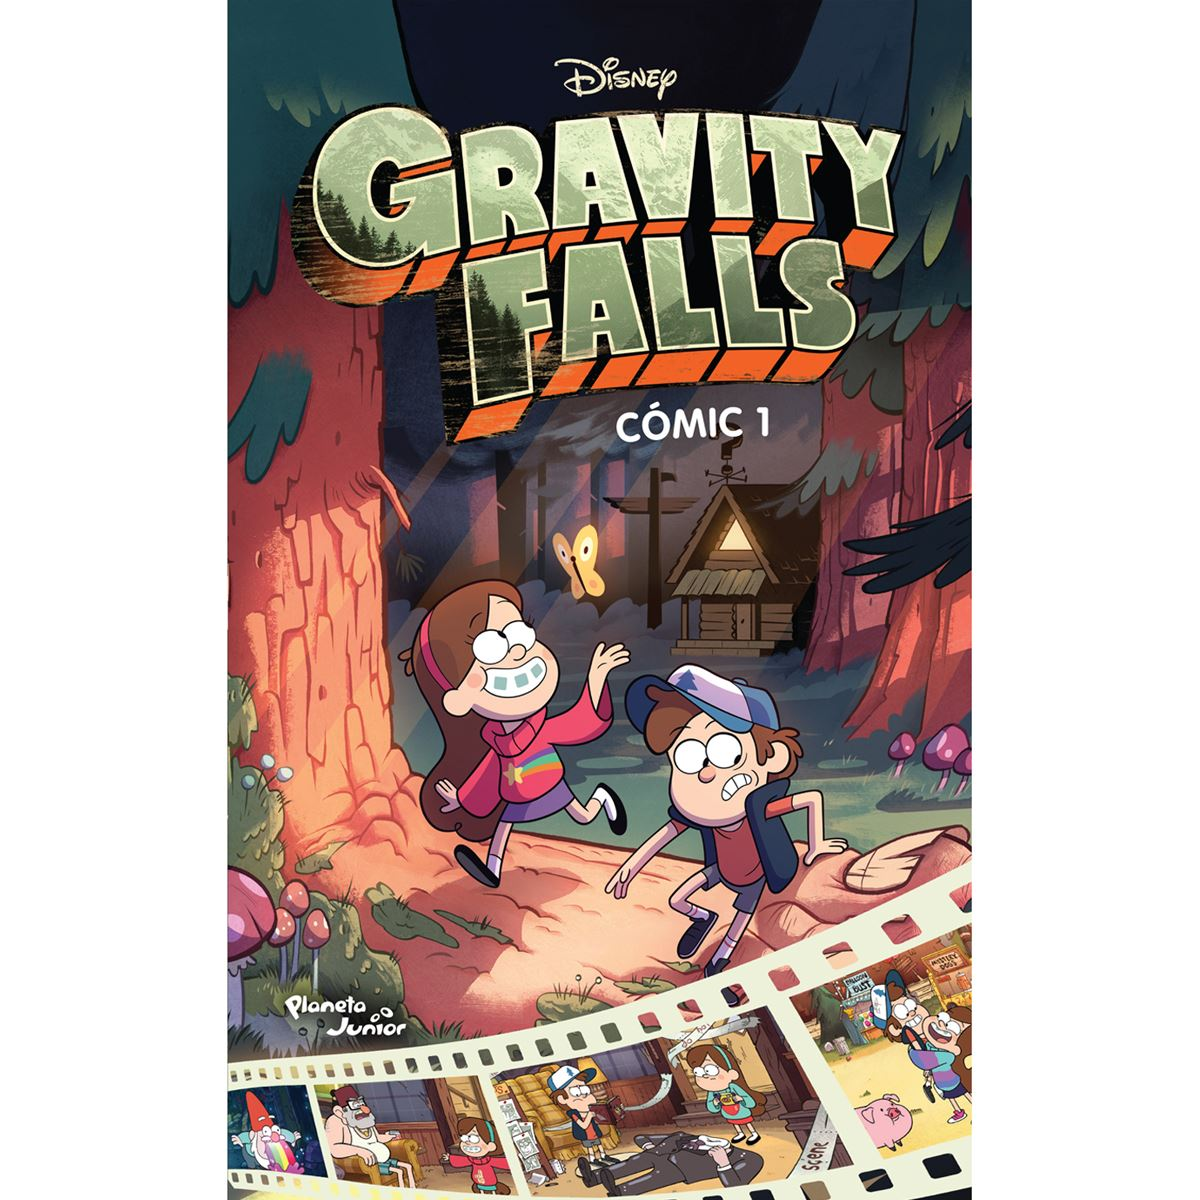 Gravity falls. cómic 1 Libro - Sanborns